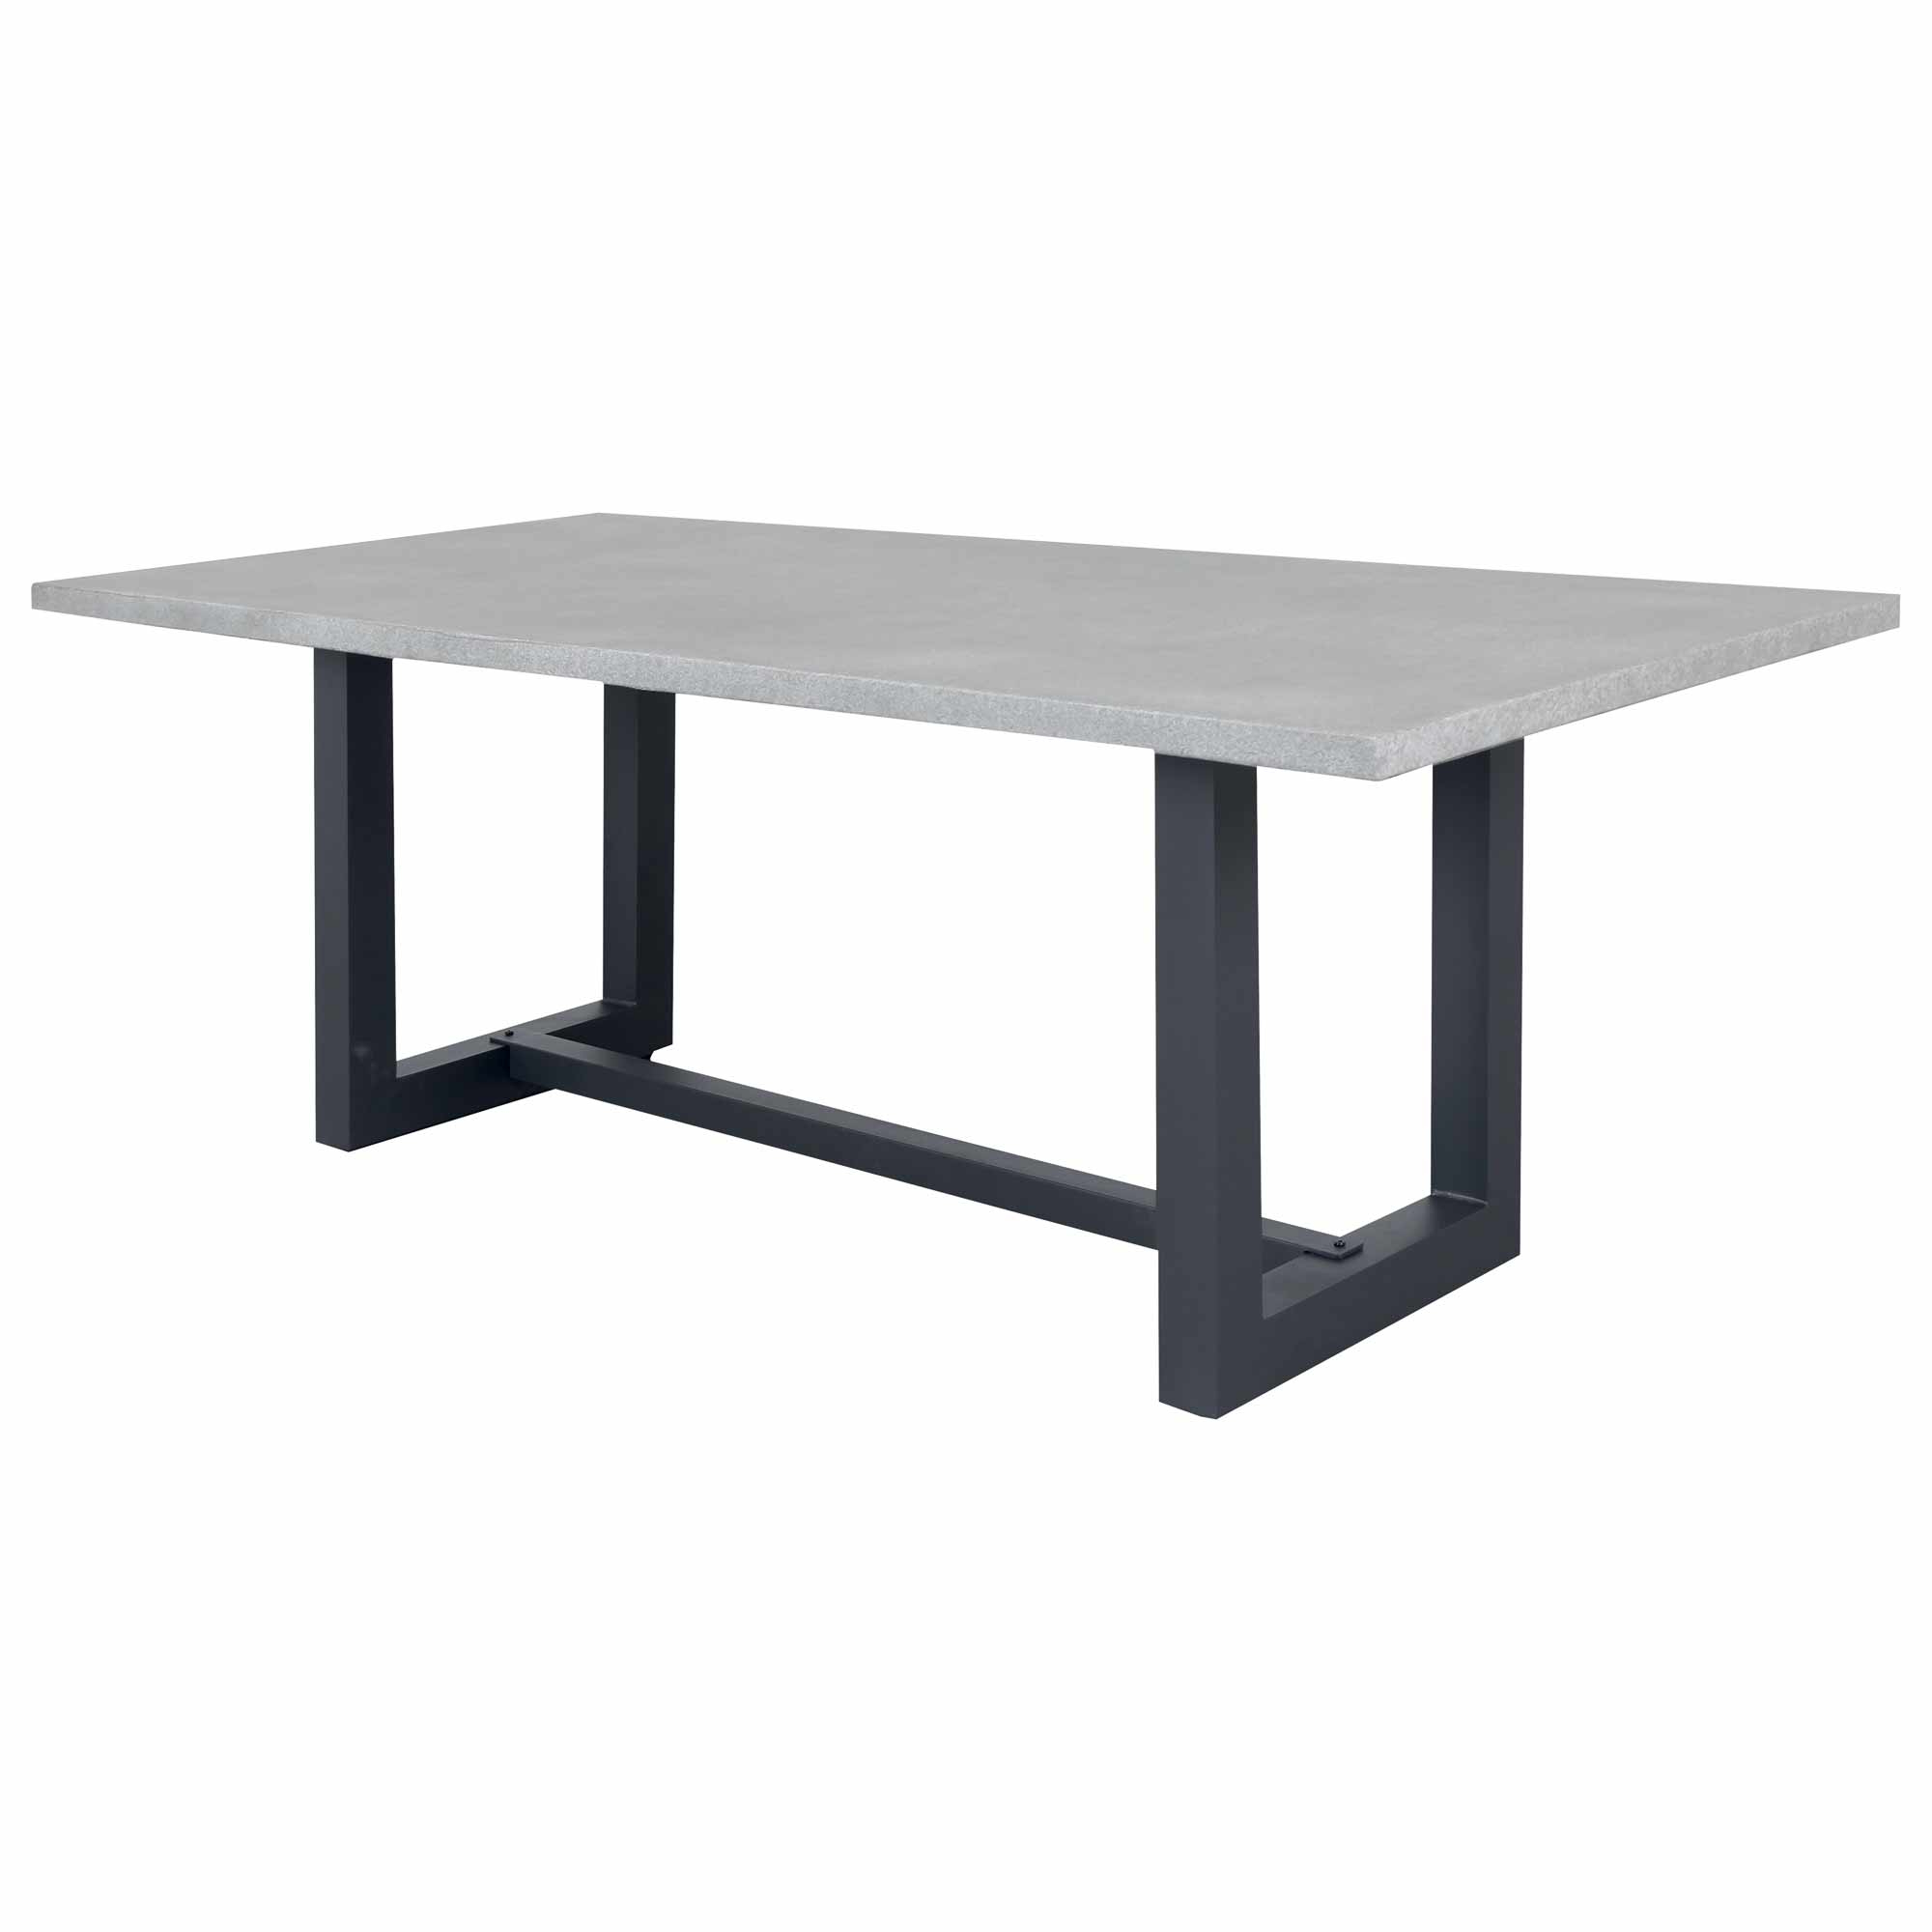 Well Liked Rectangular Dining Table H: 740Mm, W: 2200Mm, D: 1000Mm Within Rectangular Dining Tables (View 30 of 30)